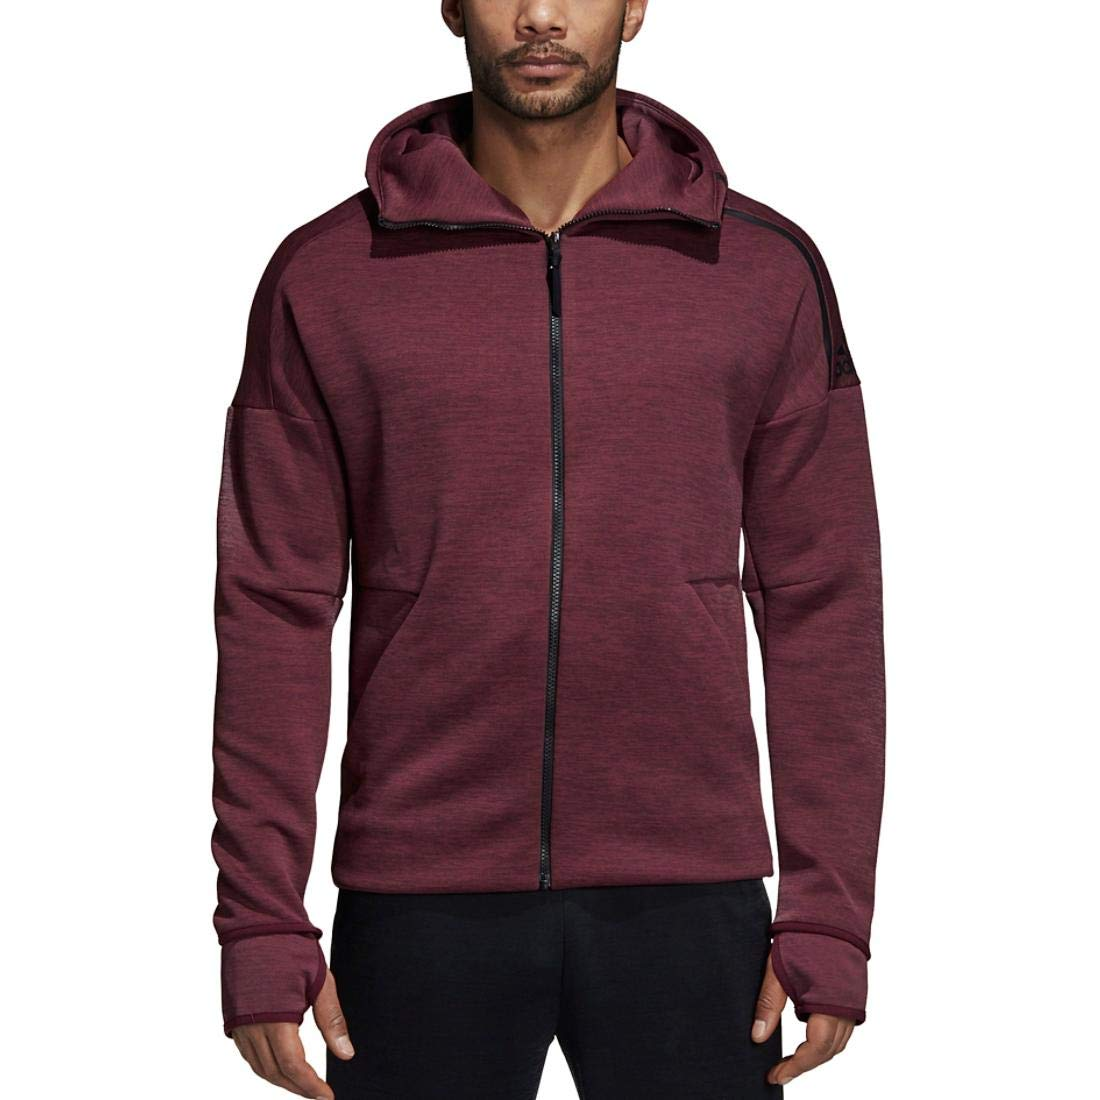 Heather Night Red L adidas Men's ZNE Full Zip Hoodie